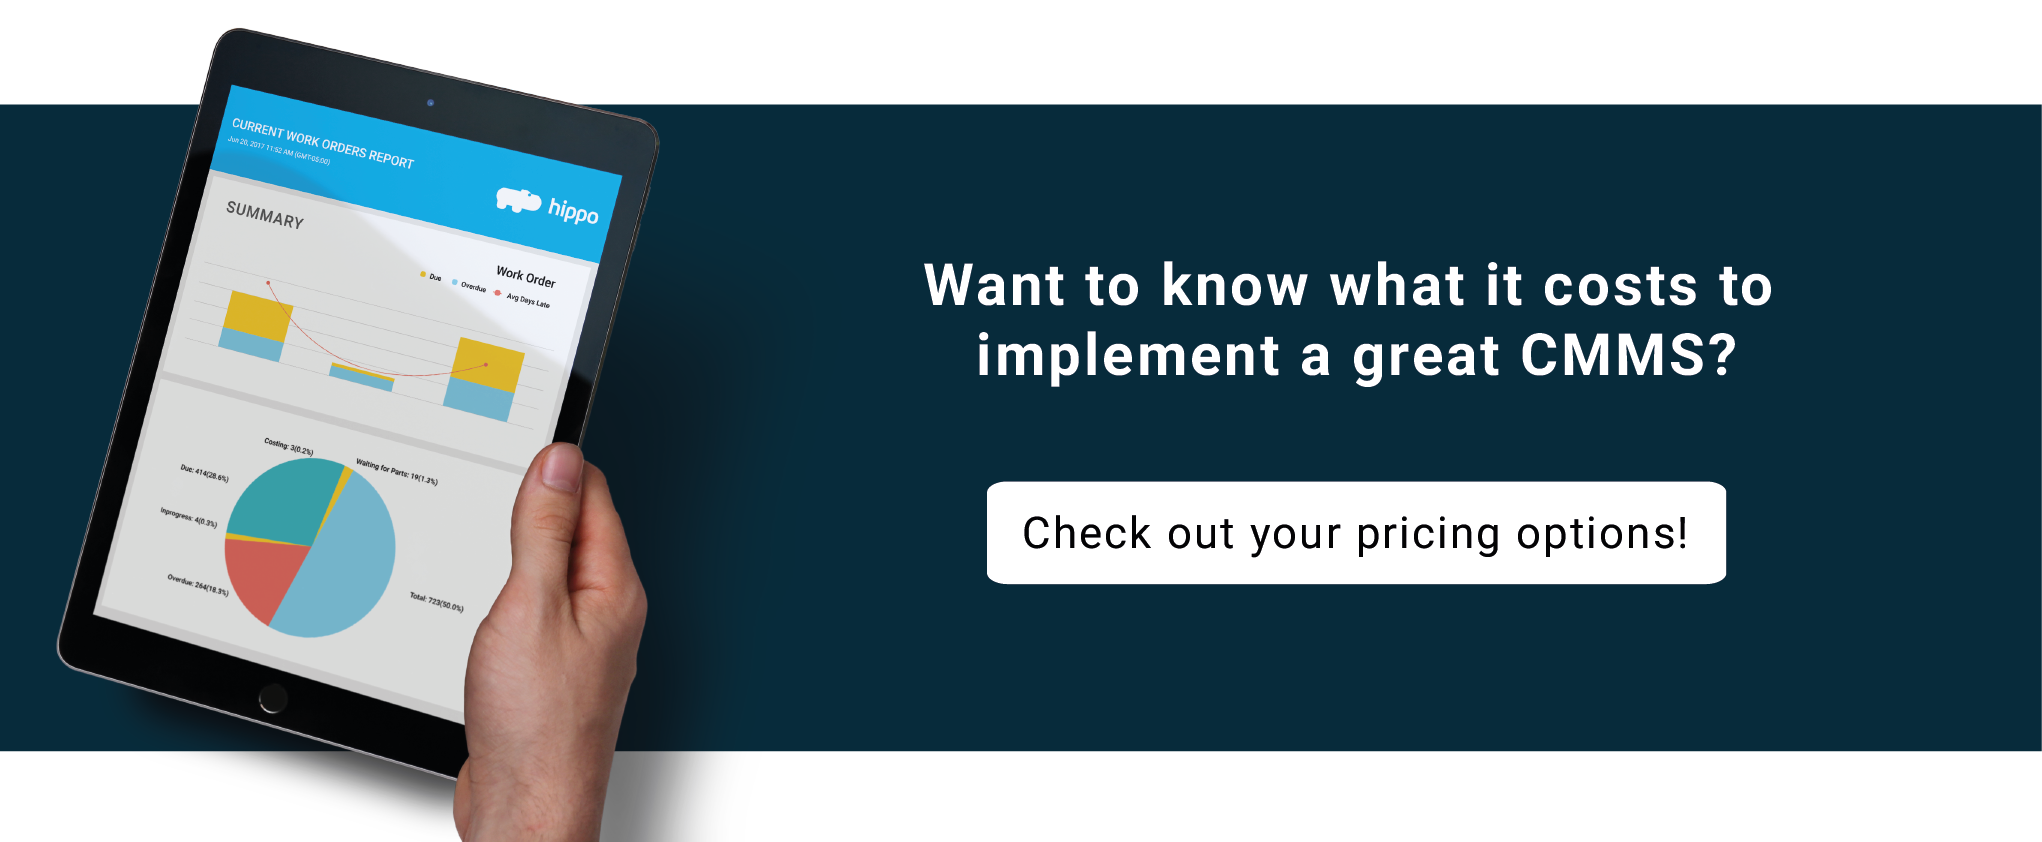 Want to know what it costs to implement a great CMMS? Check out your pricing options!